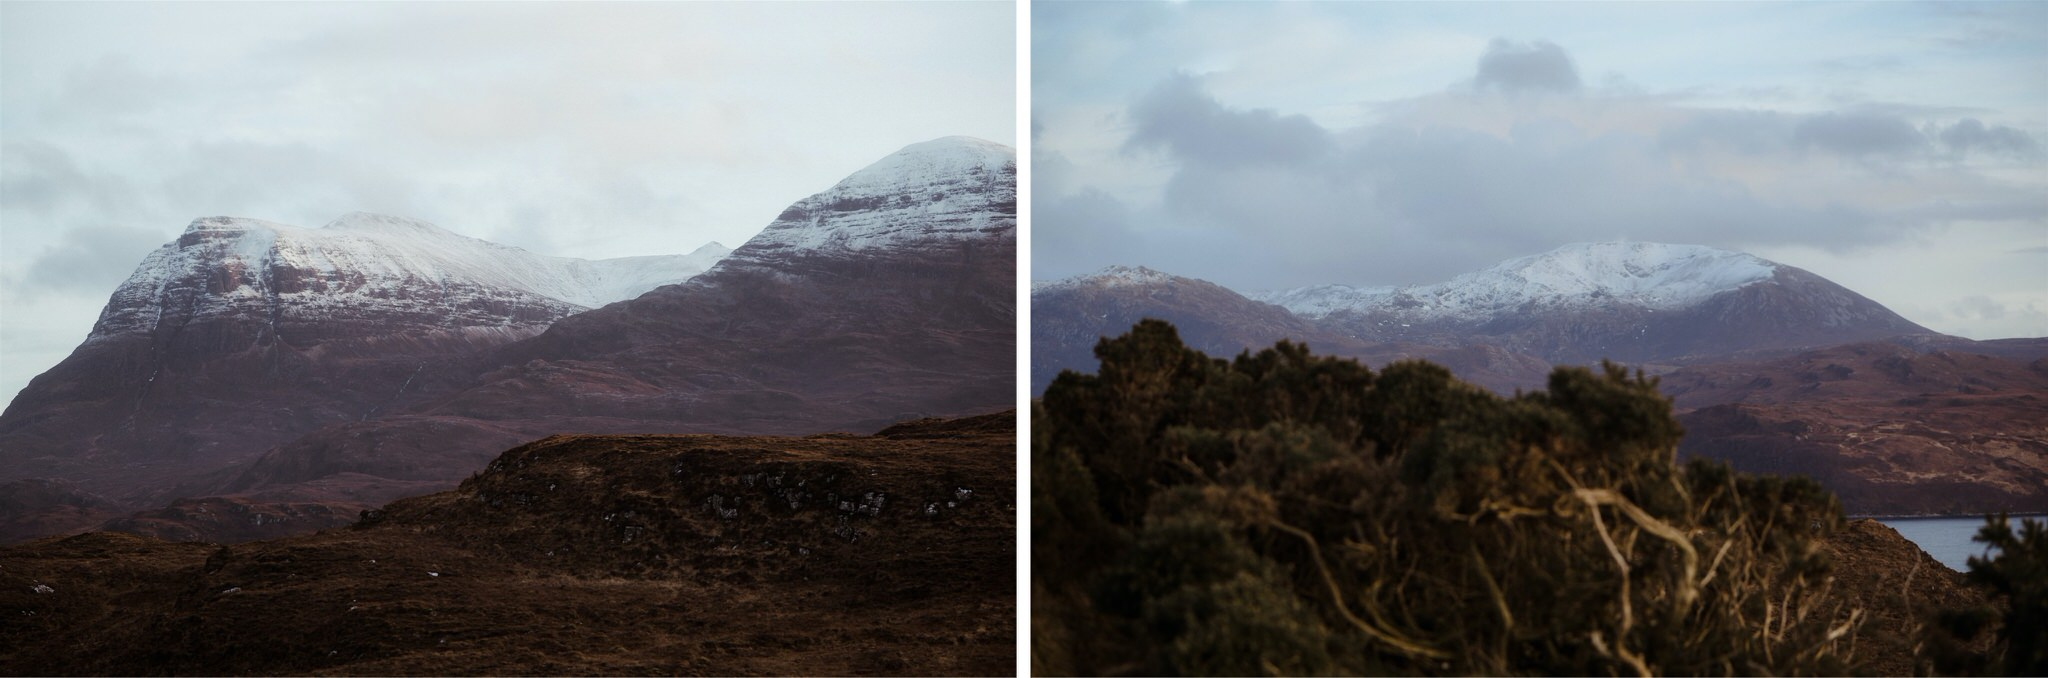 Mountain views in Assynt - on the North Coast 500